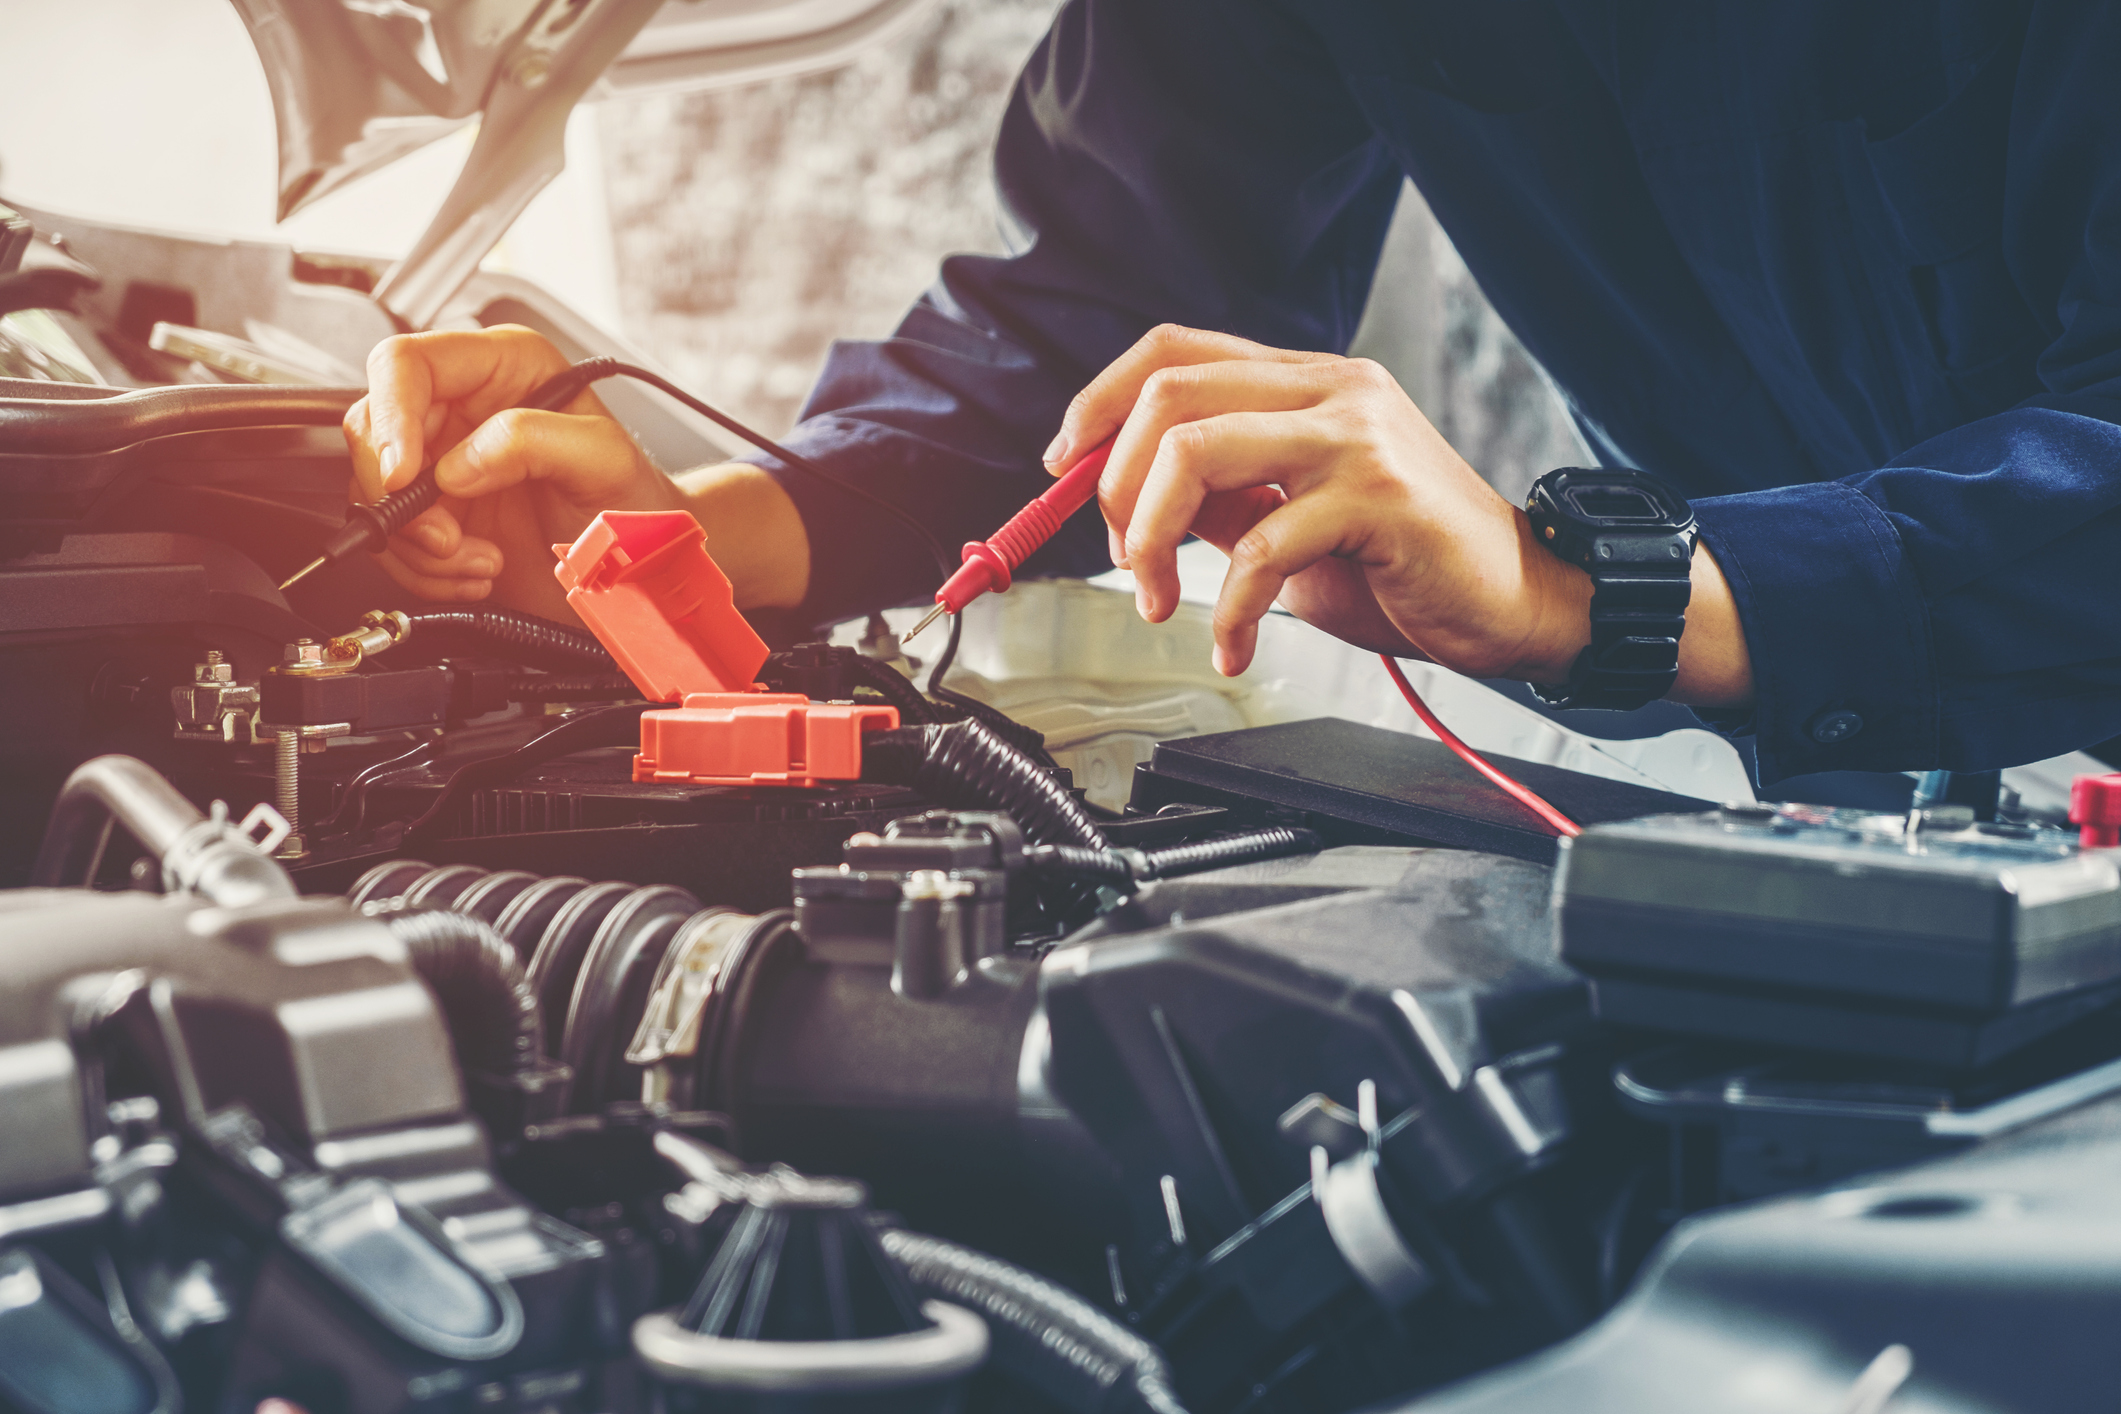 Automotive Collision Repair Service in Milford, MA